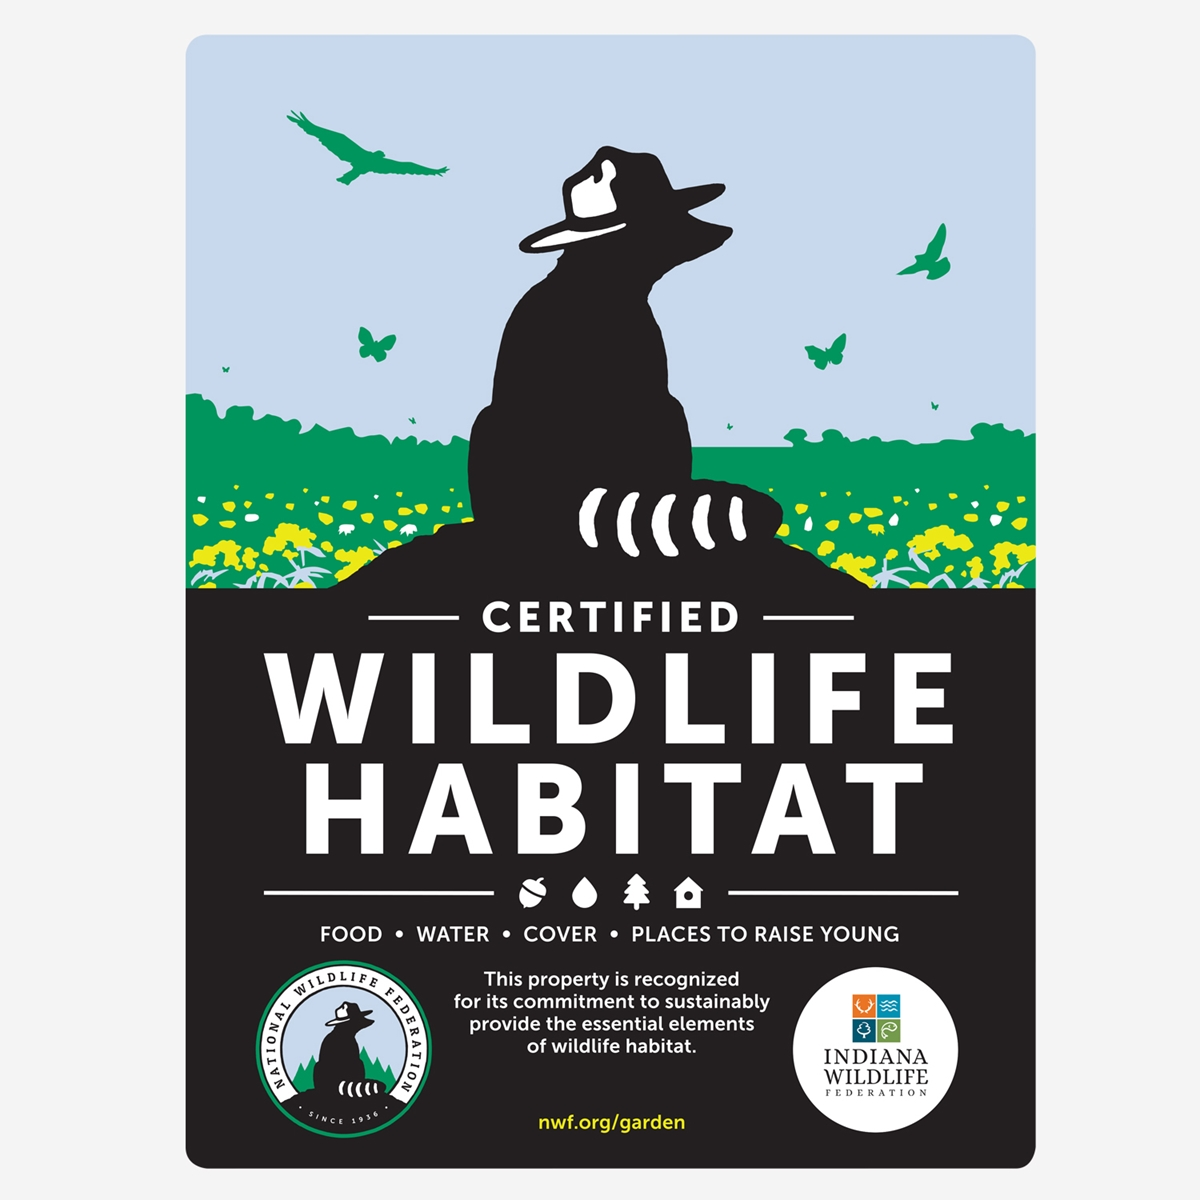 Indiana Wildlife Federation Certified Wildlife Habitat Sign